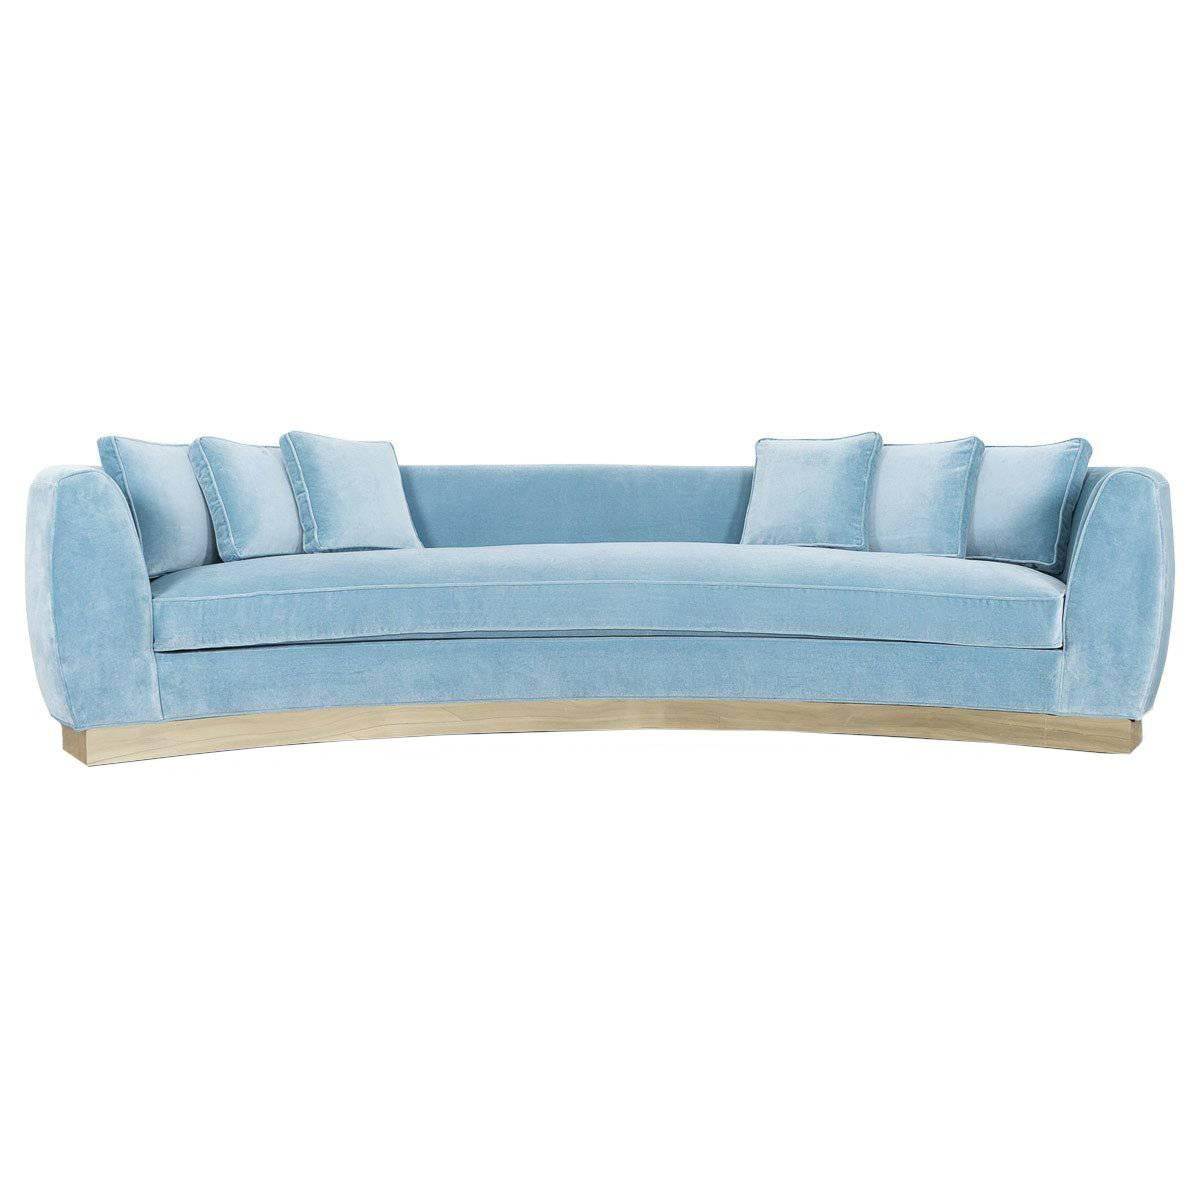 art deco style curved sofa in velvet upholstery with brass toe kick base 10 foot